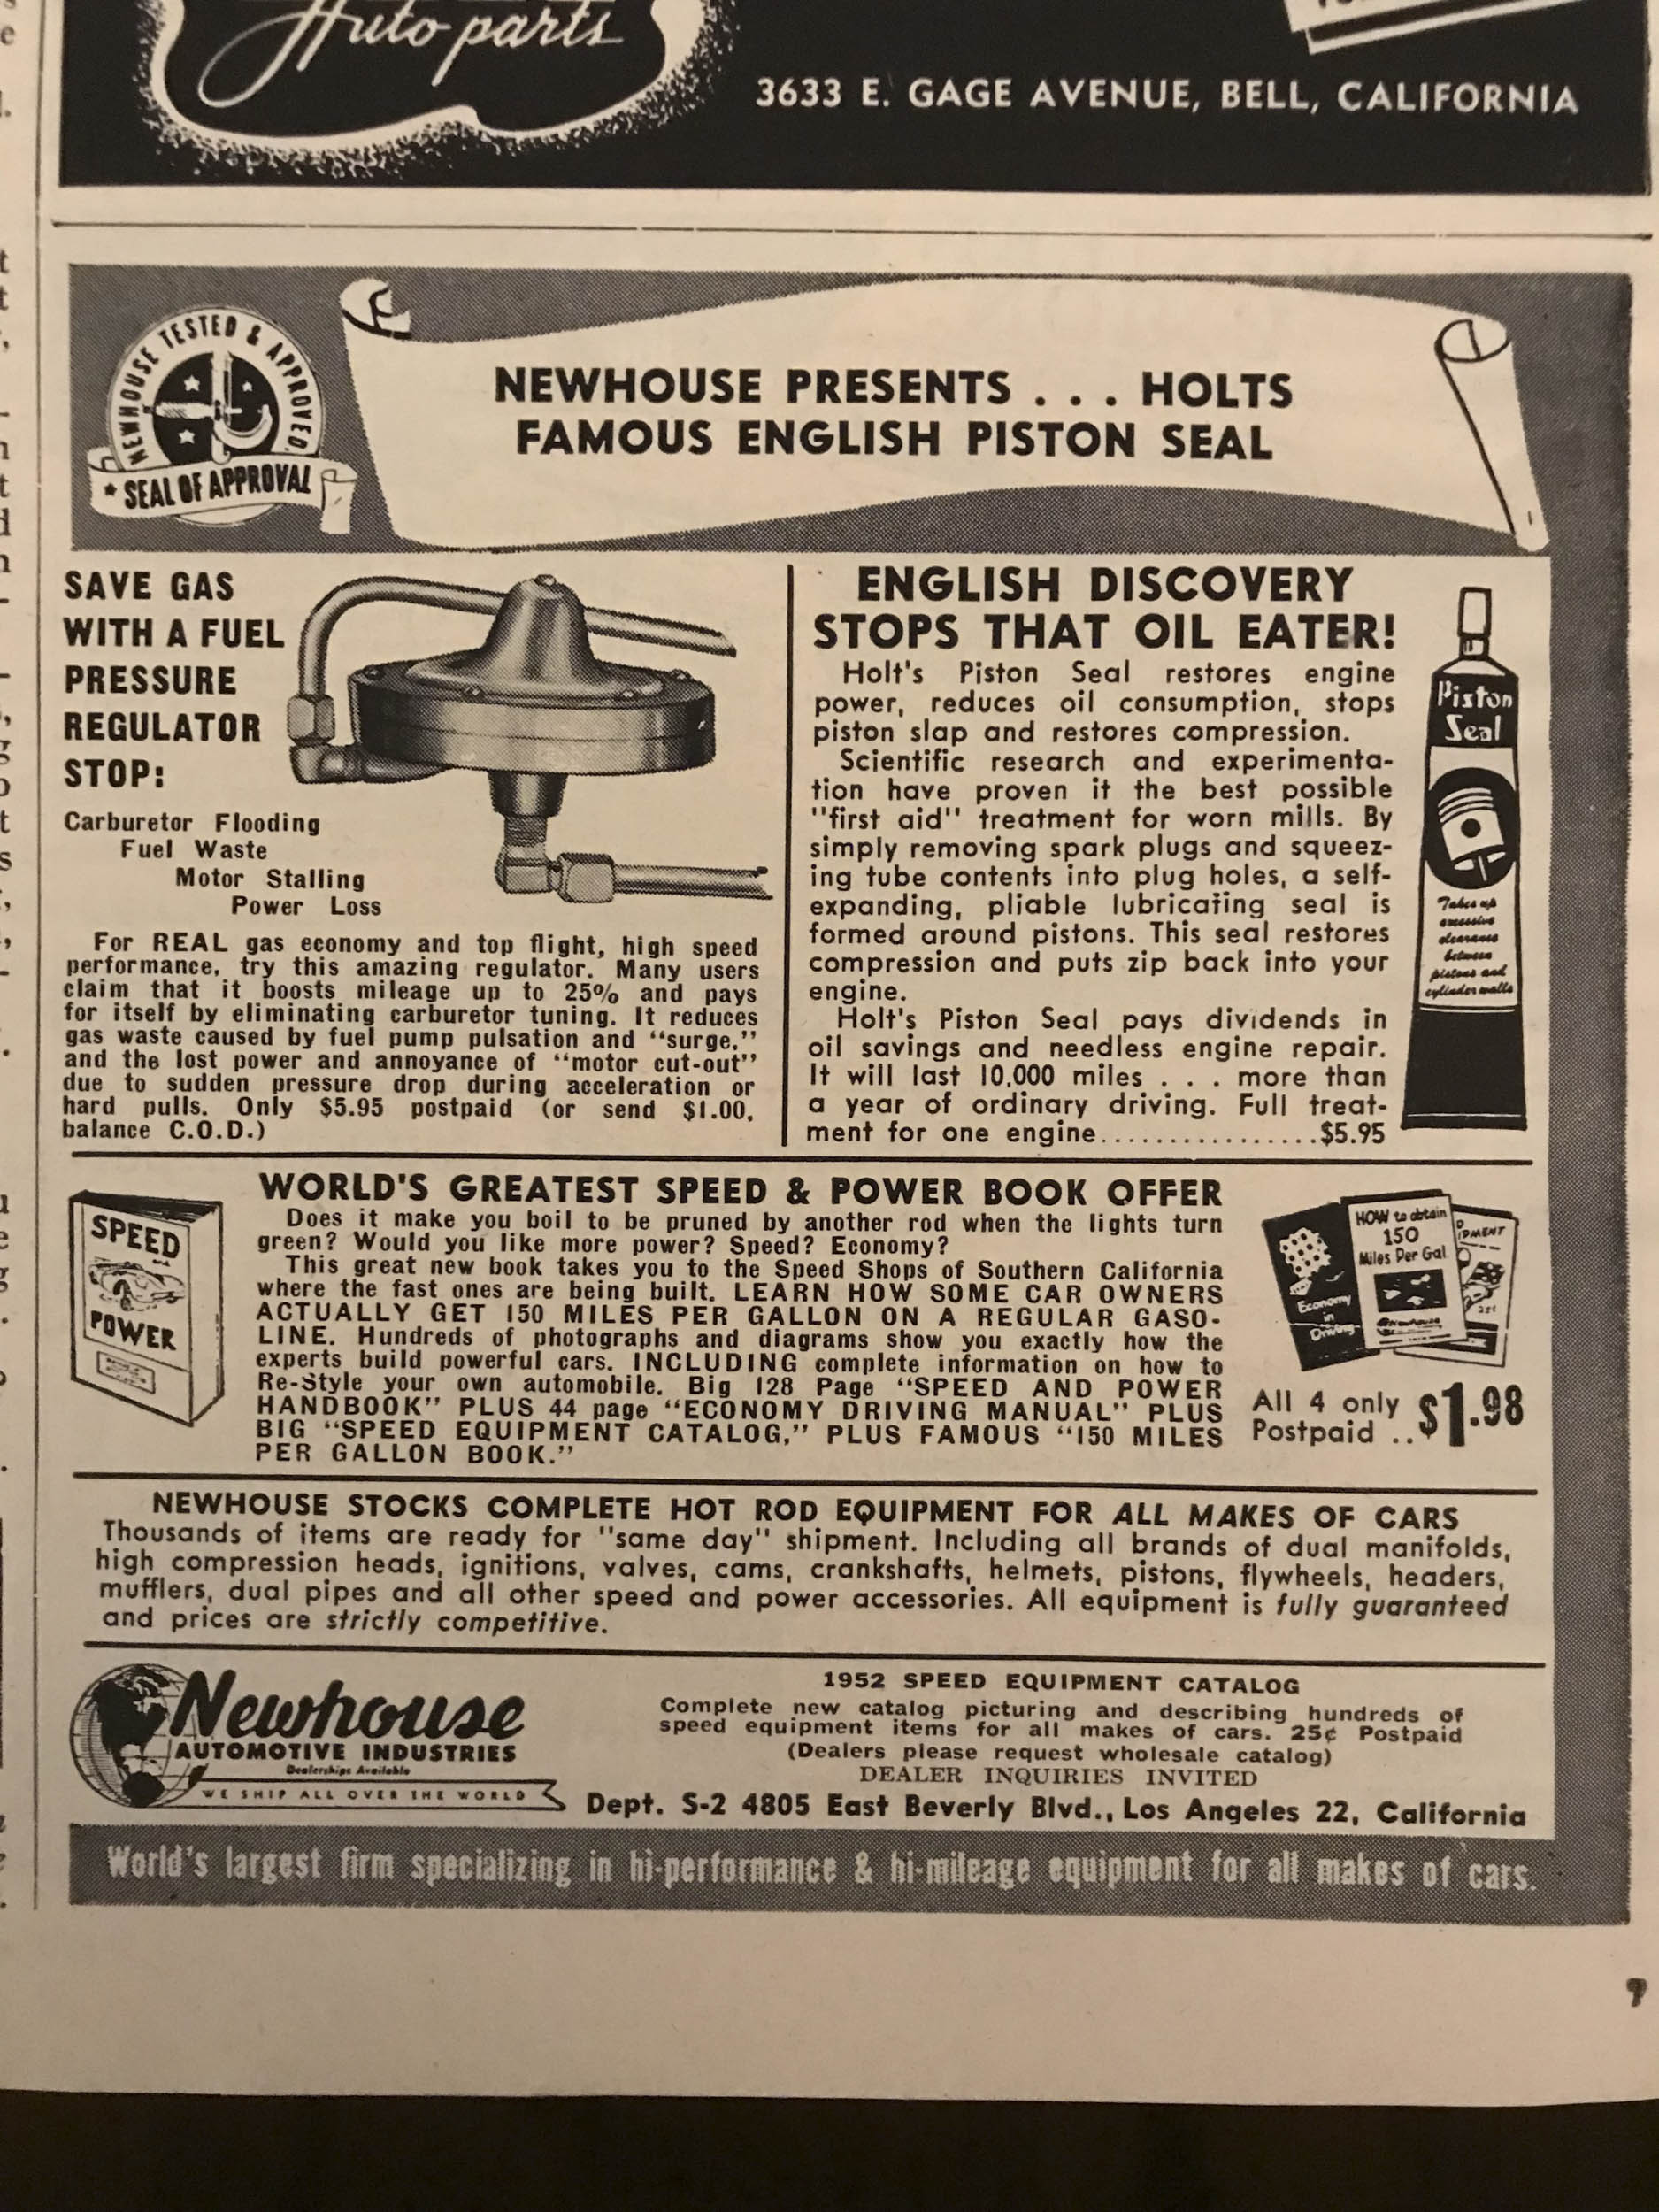 Newhouse Fuel Pressure Regulator Stop (1952)